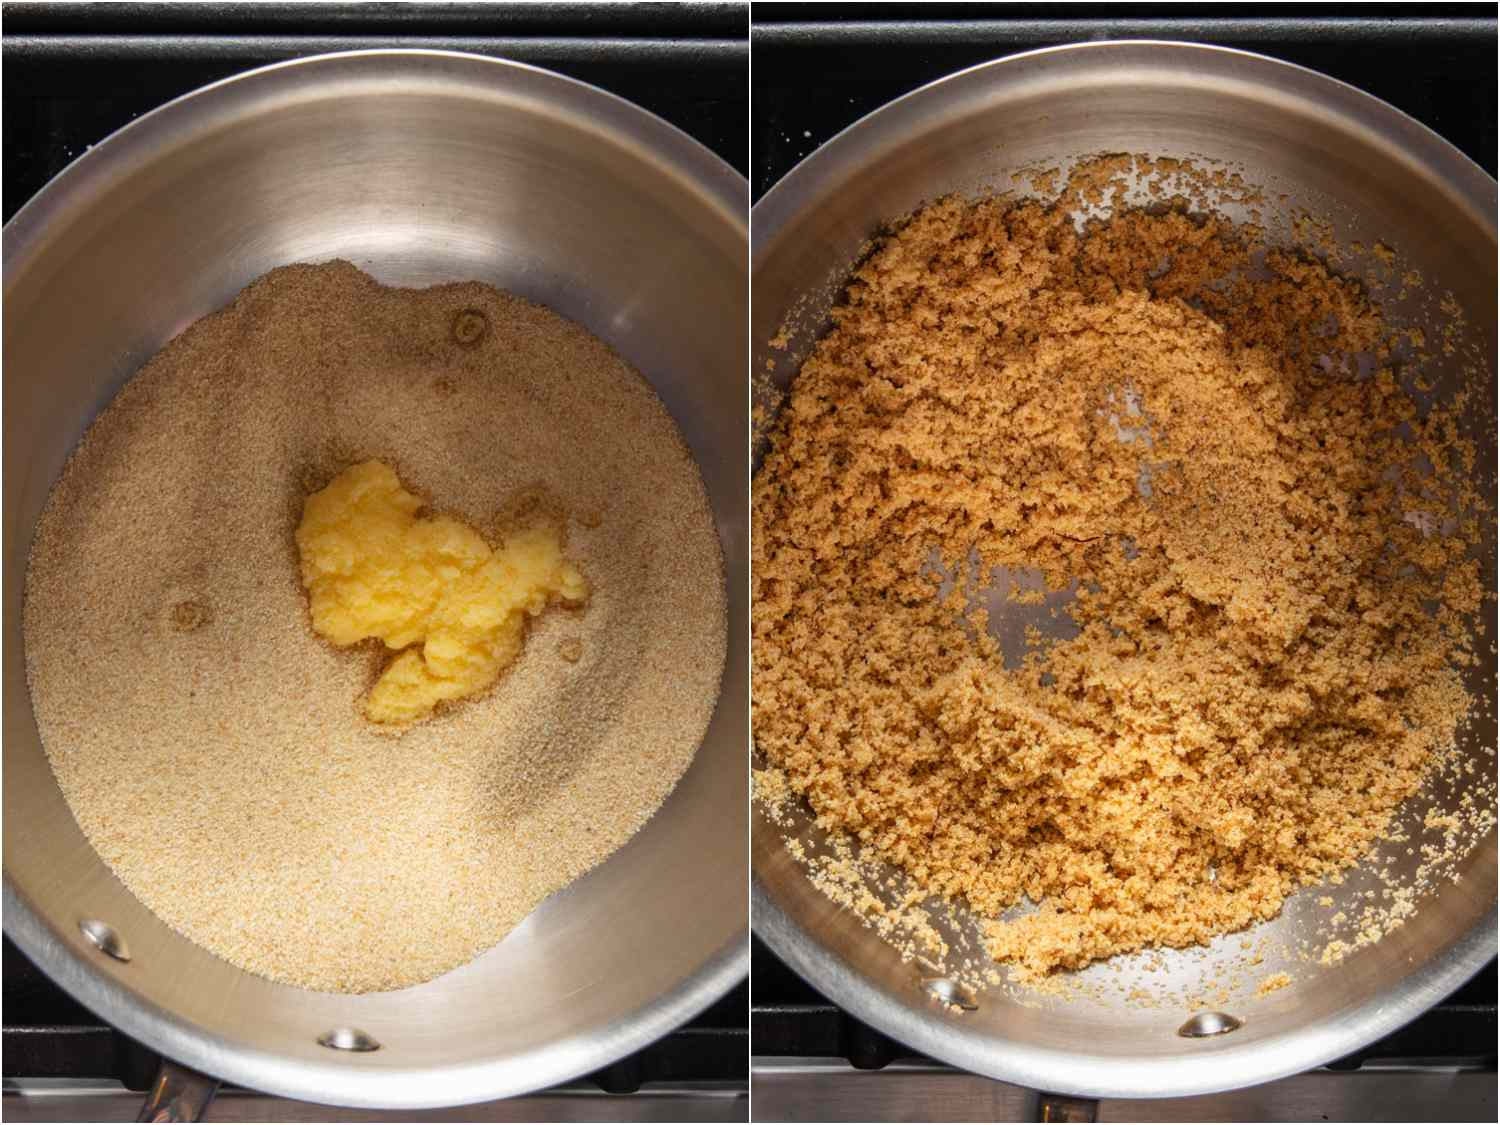 Semolina and ghee mixed together in a saucepan